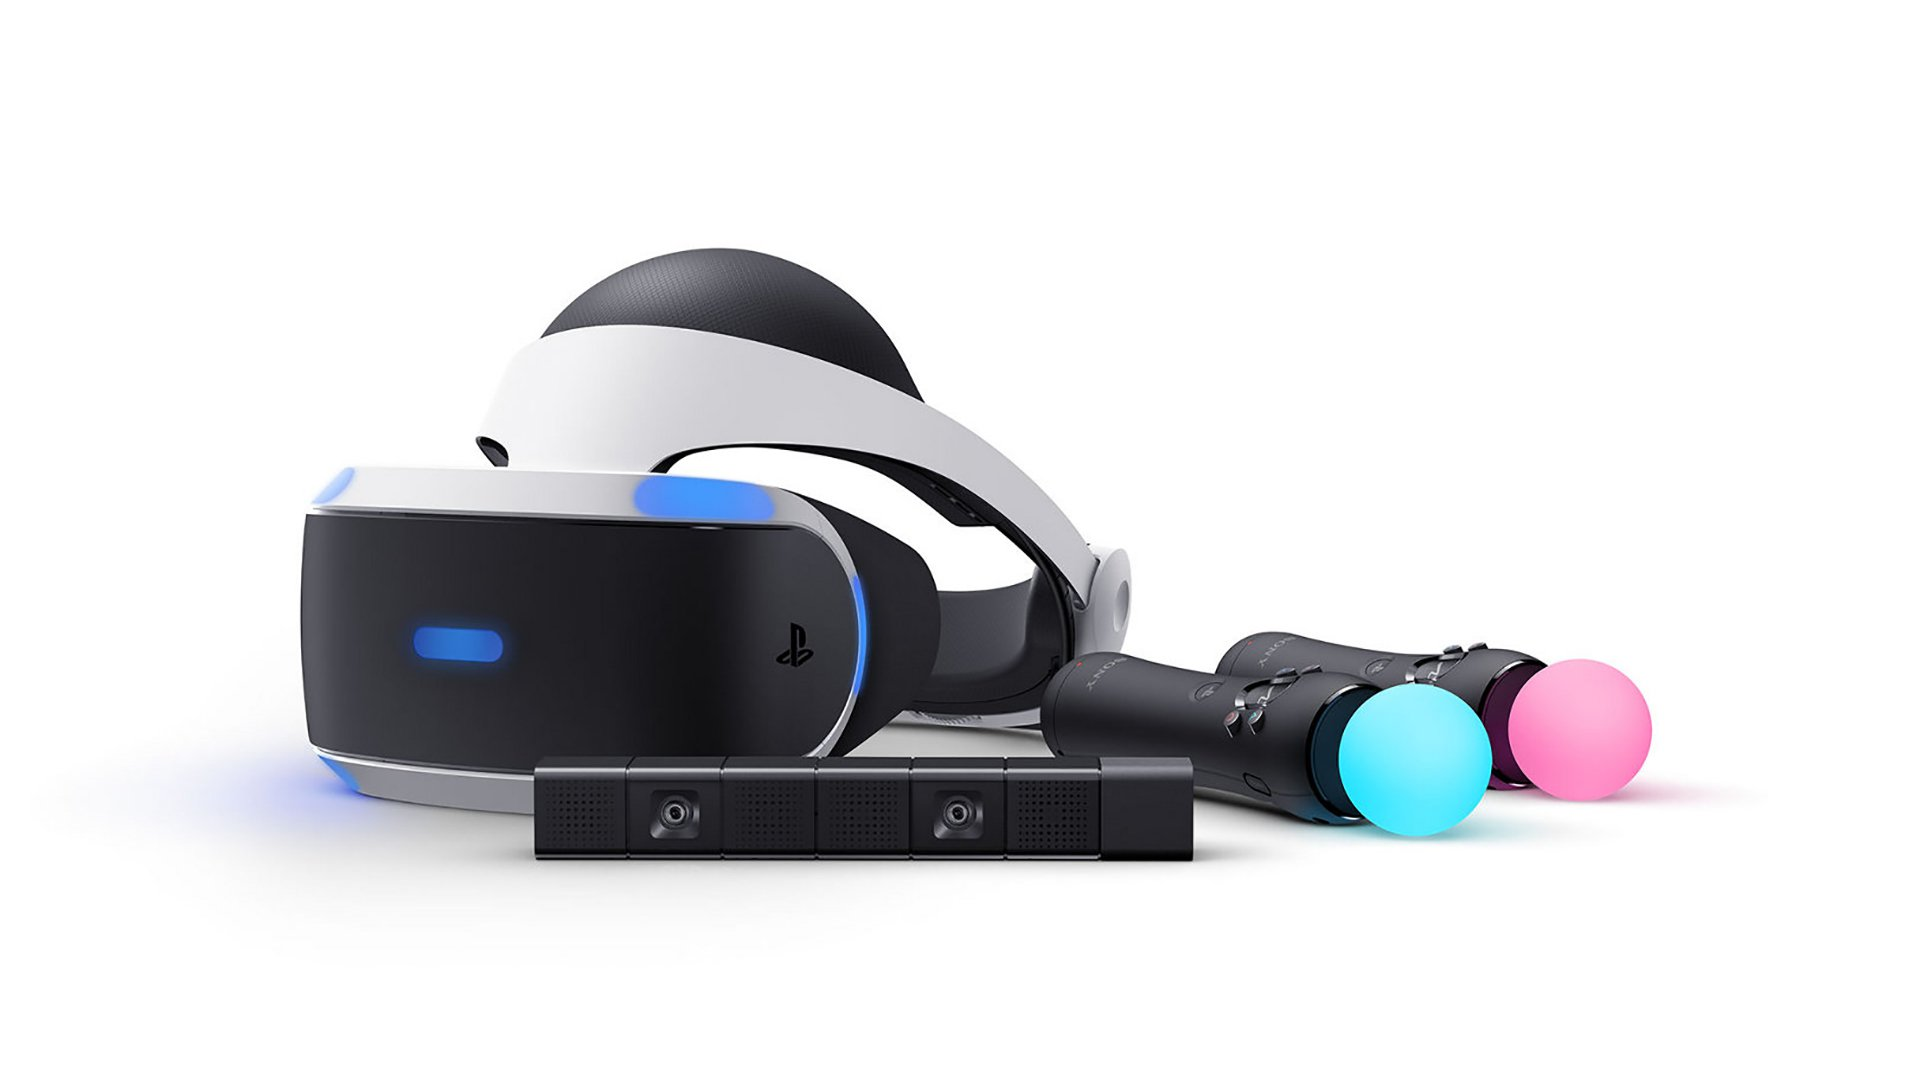 Le playstation VR dans ma wishlist de Noël